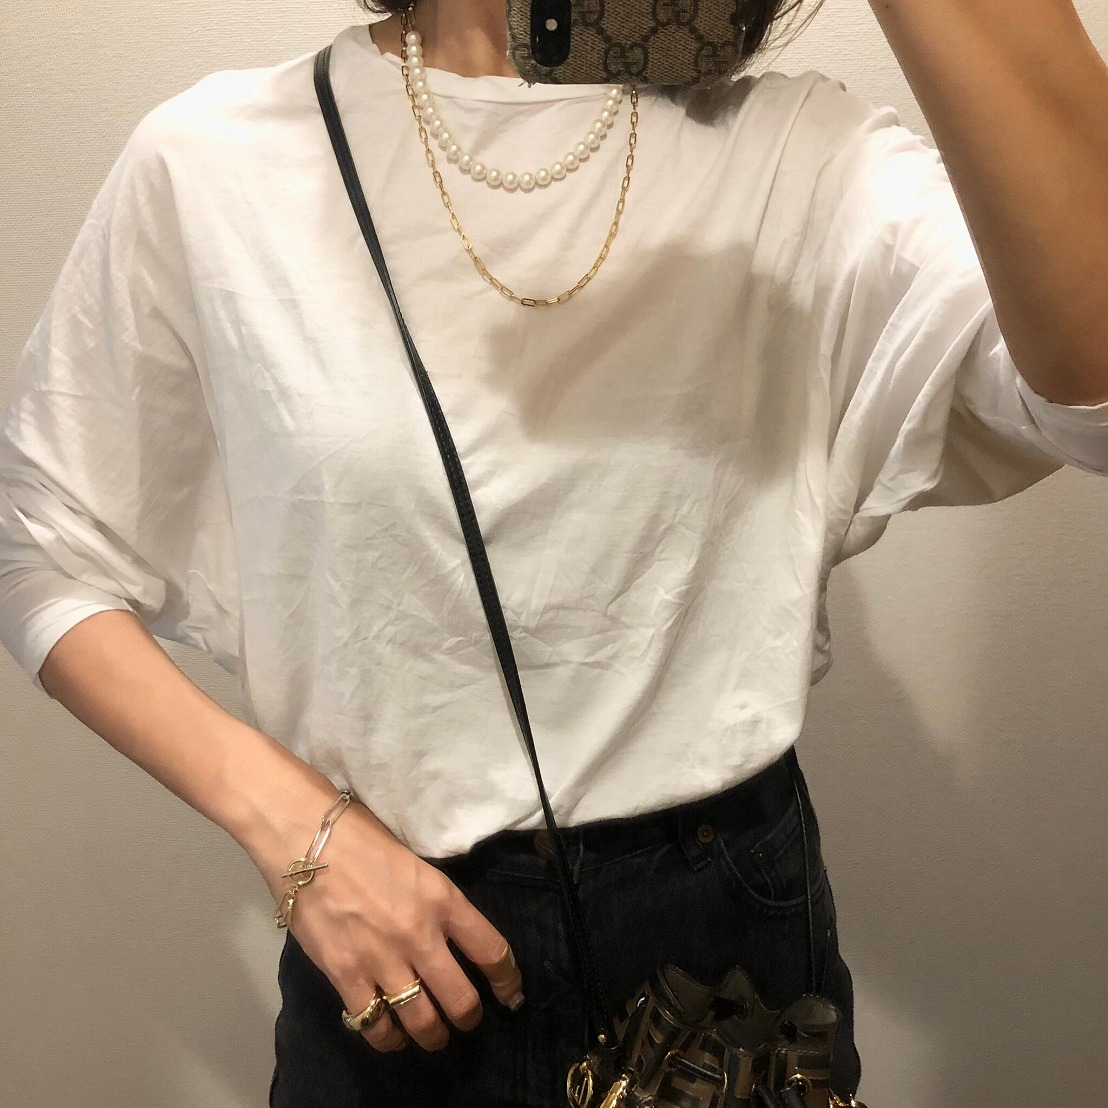 【SOLD OUT】Bicolorチェーンブレスレット